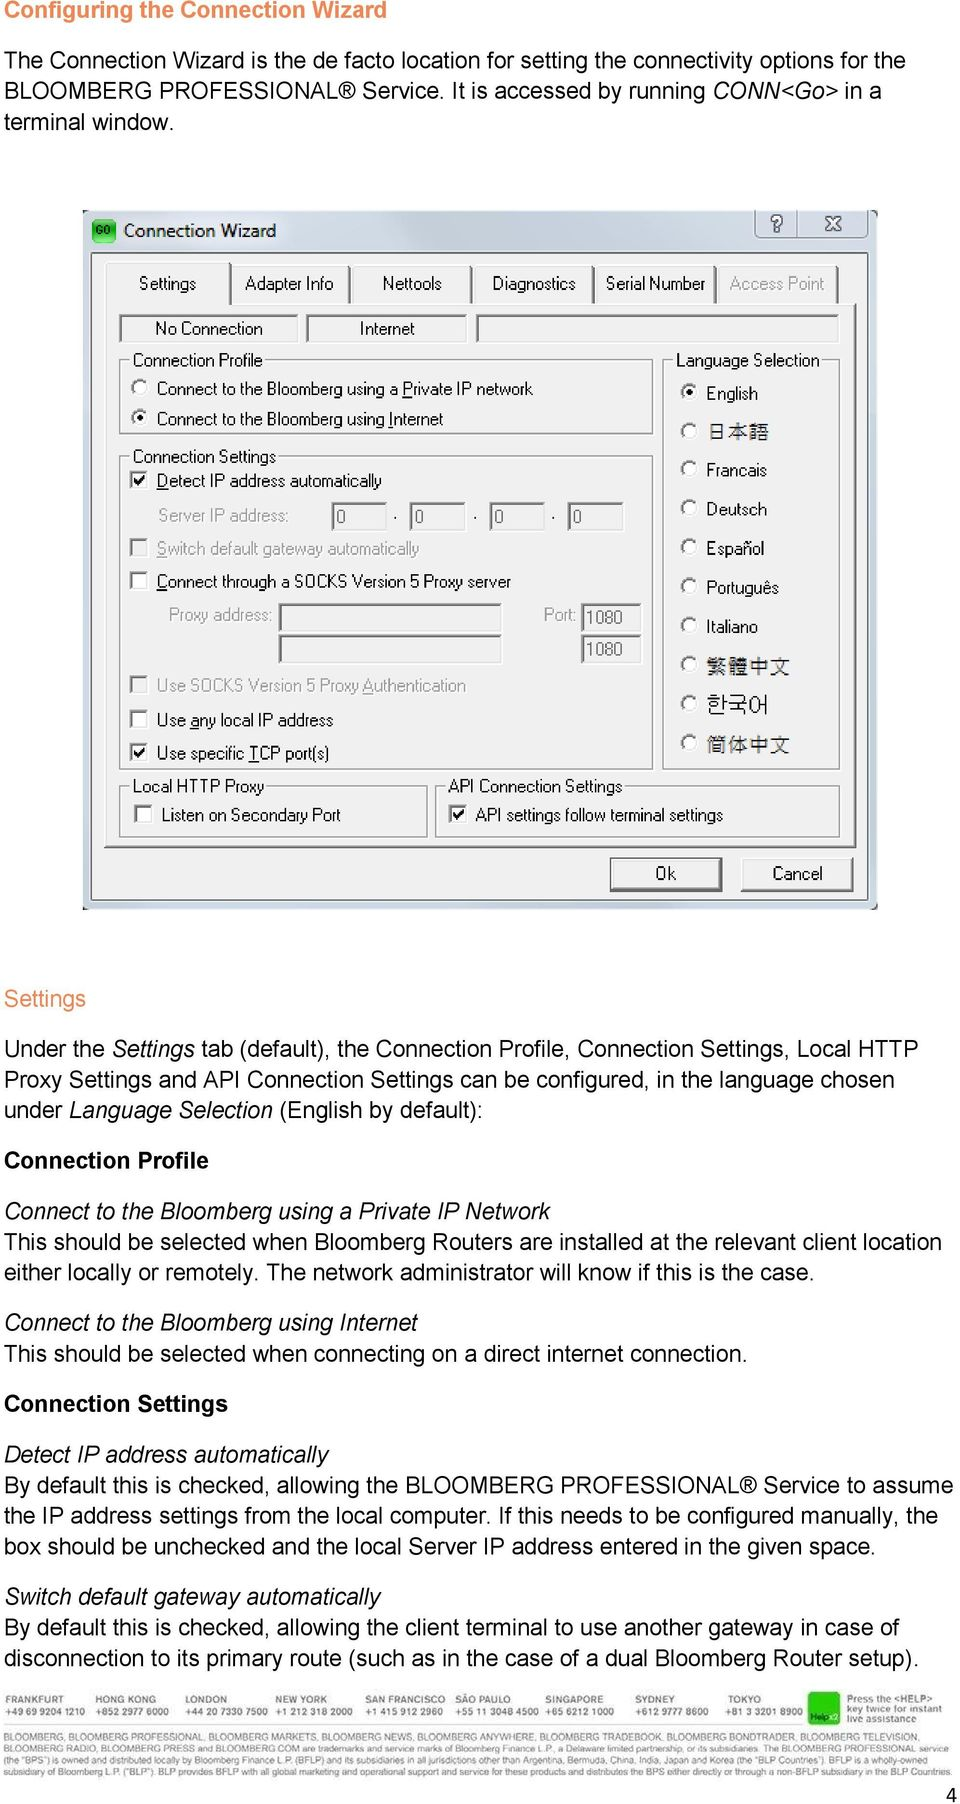 Settings Under the Settings tab (default), the Connection Profile, Connection Settings, Local HTTP Proxy Settings and API Connection Settings can be configured, in the language chosen under Language